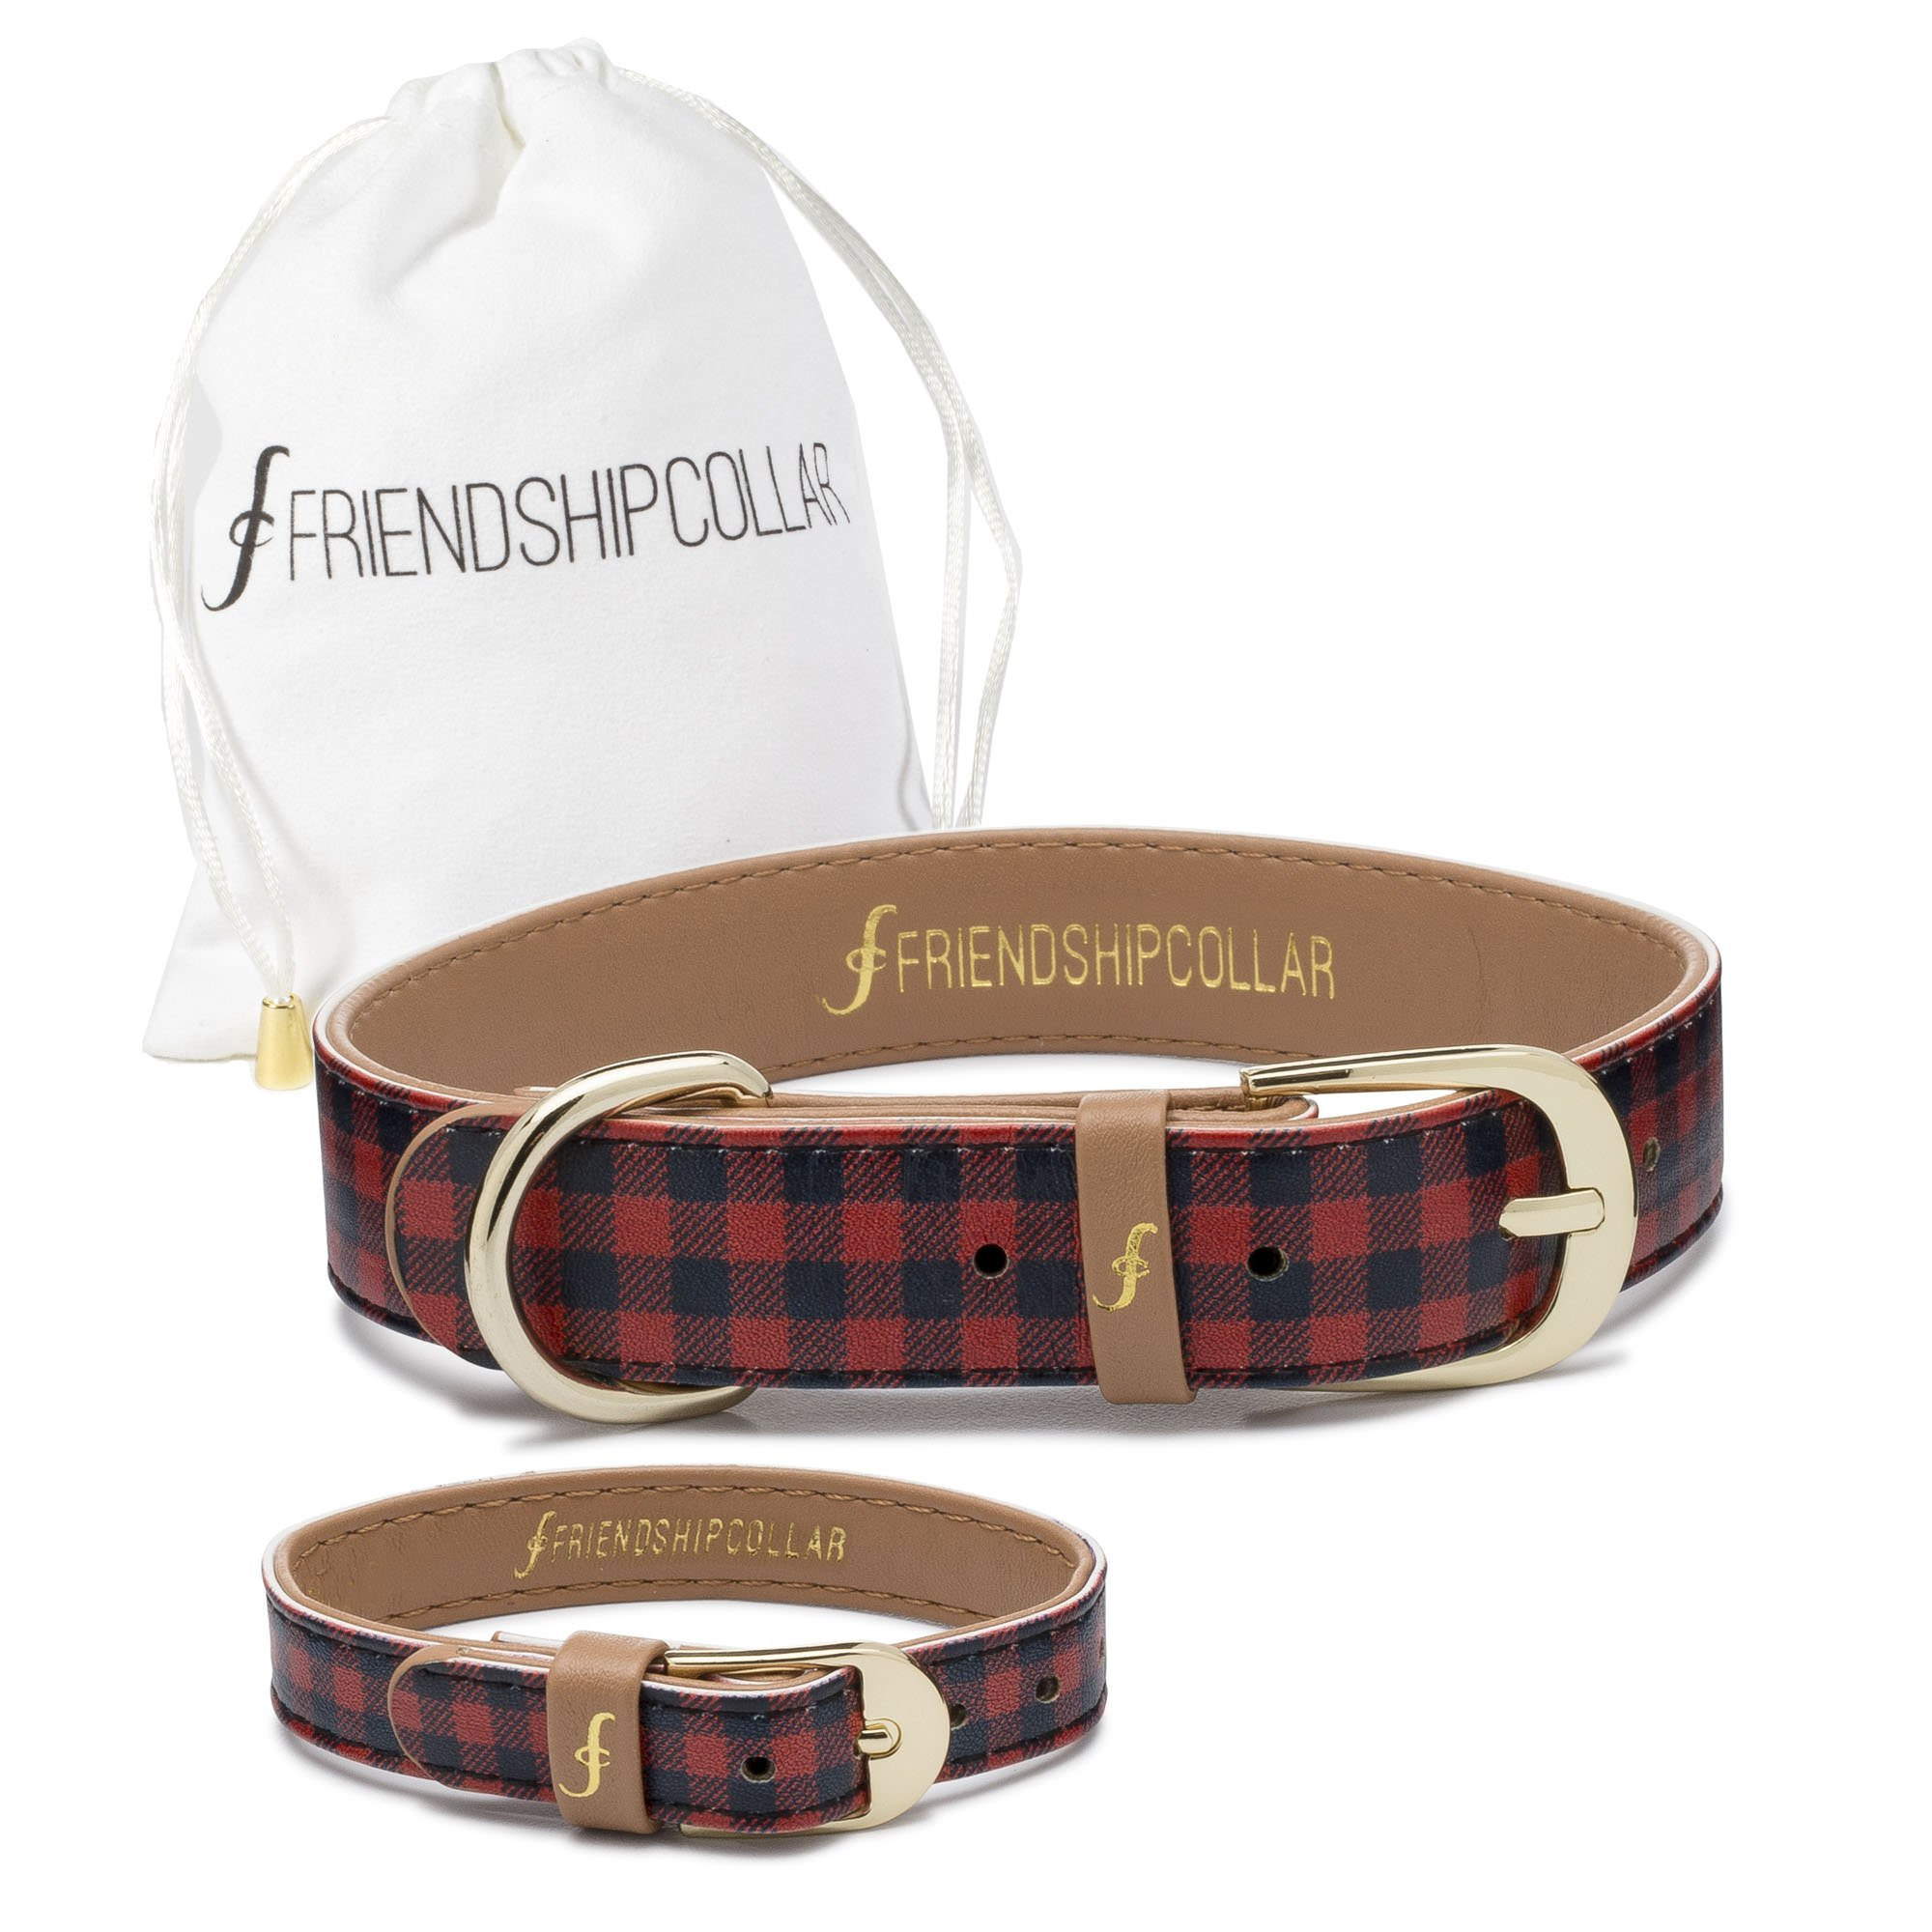 FriendshipCollar Dog Collar and Friendship Bracelet - The Hipster Pup - Large